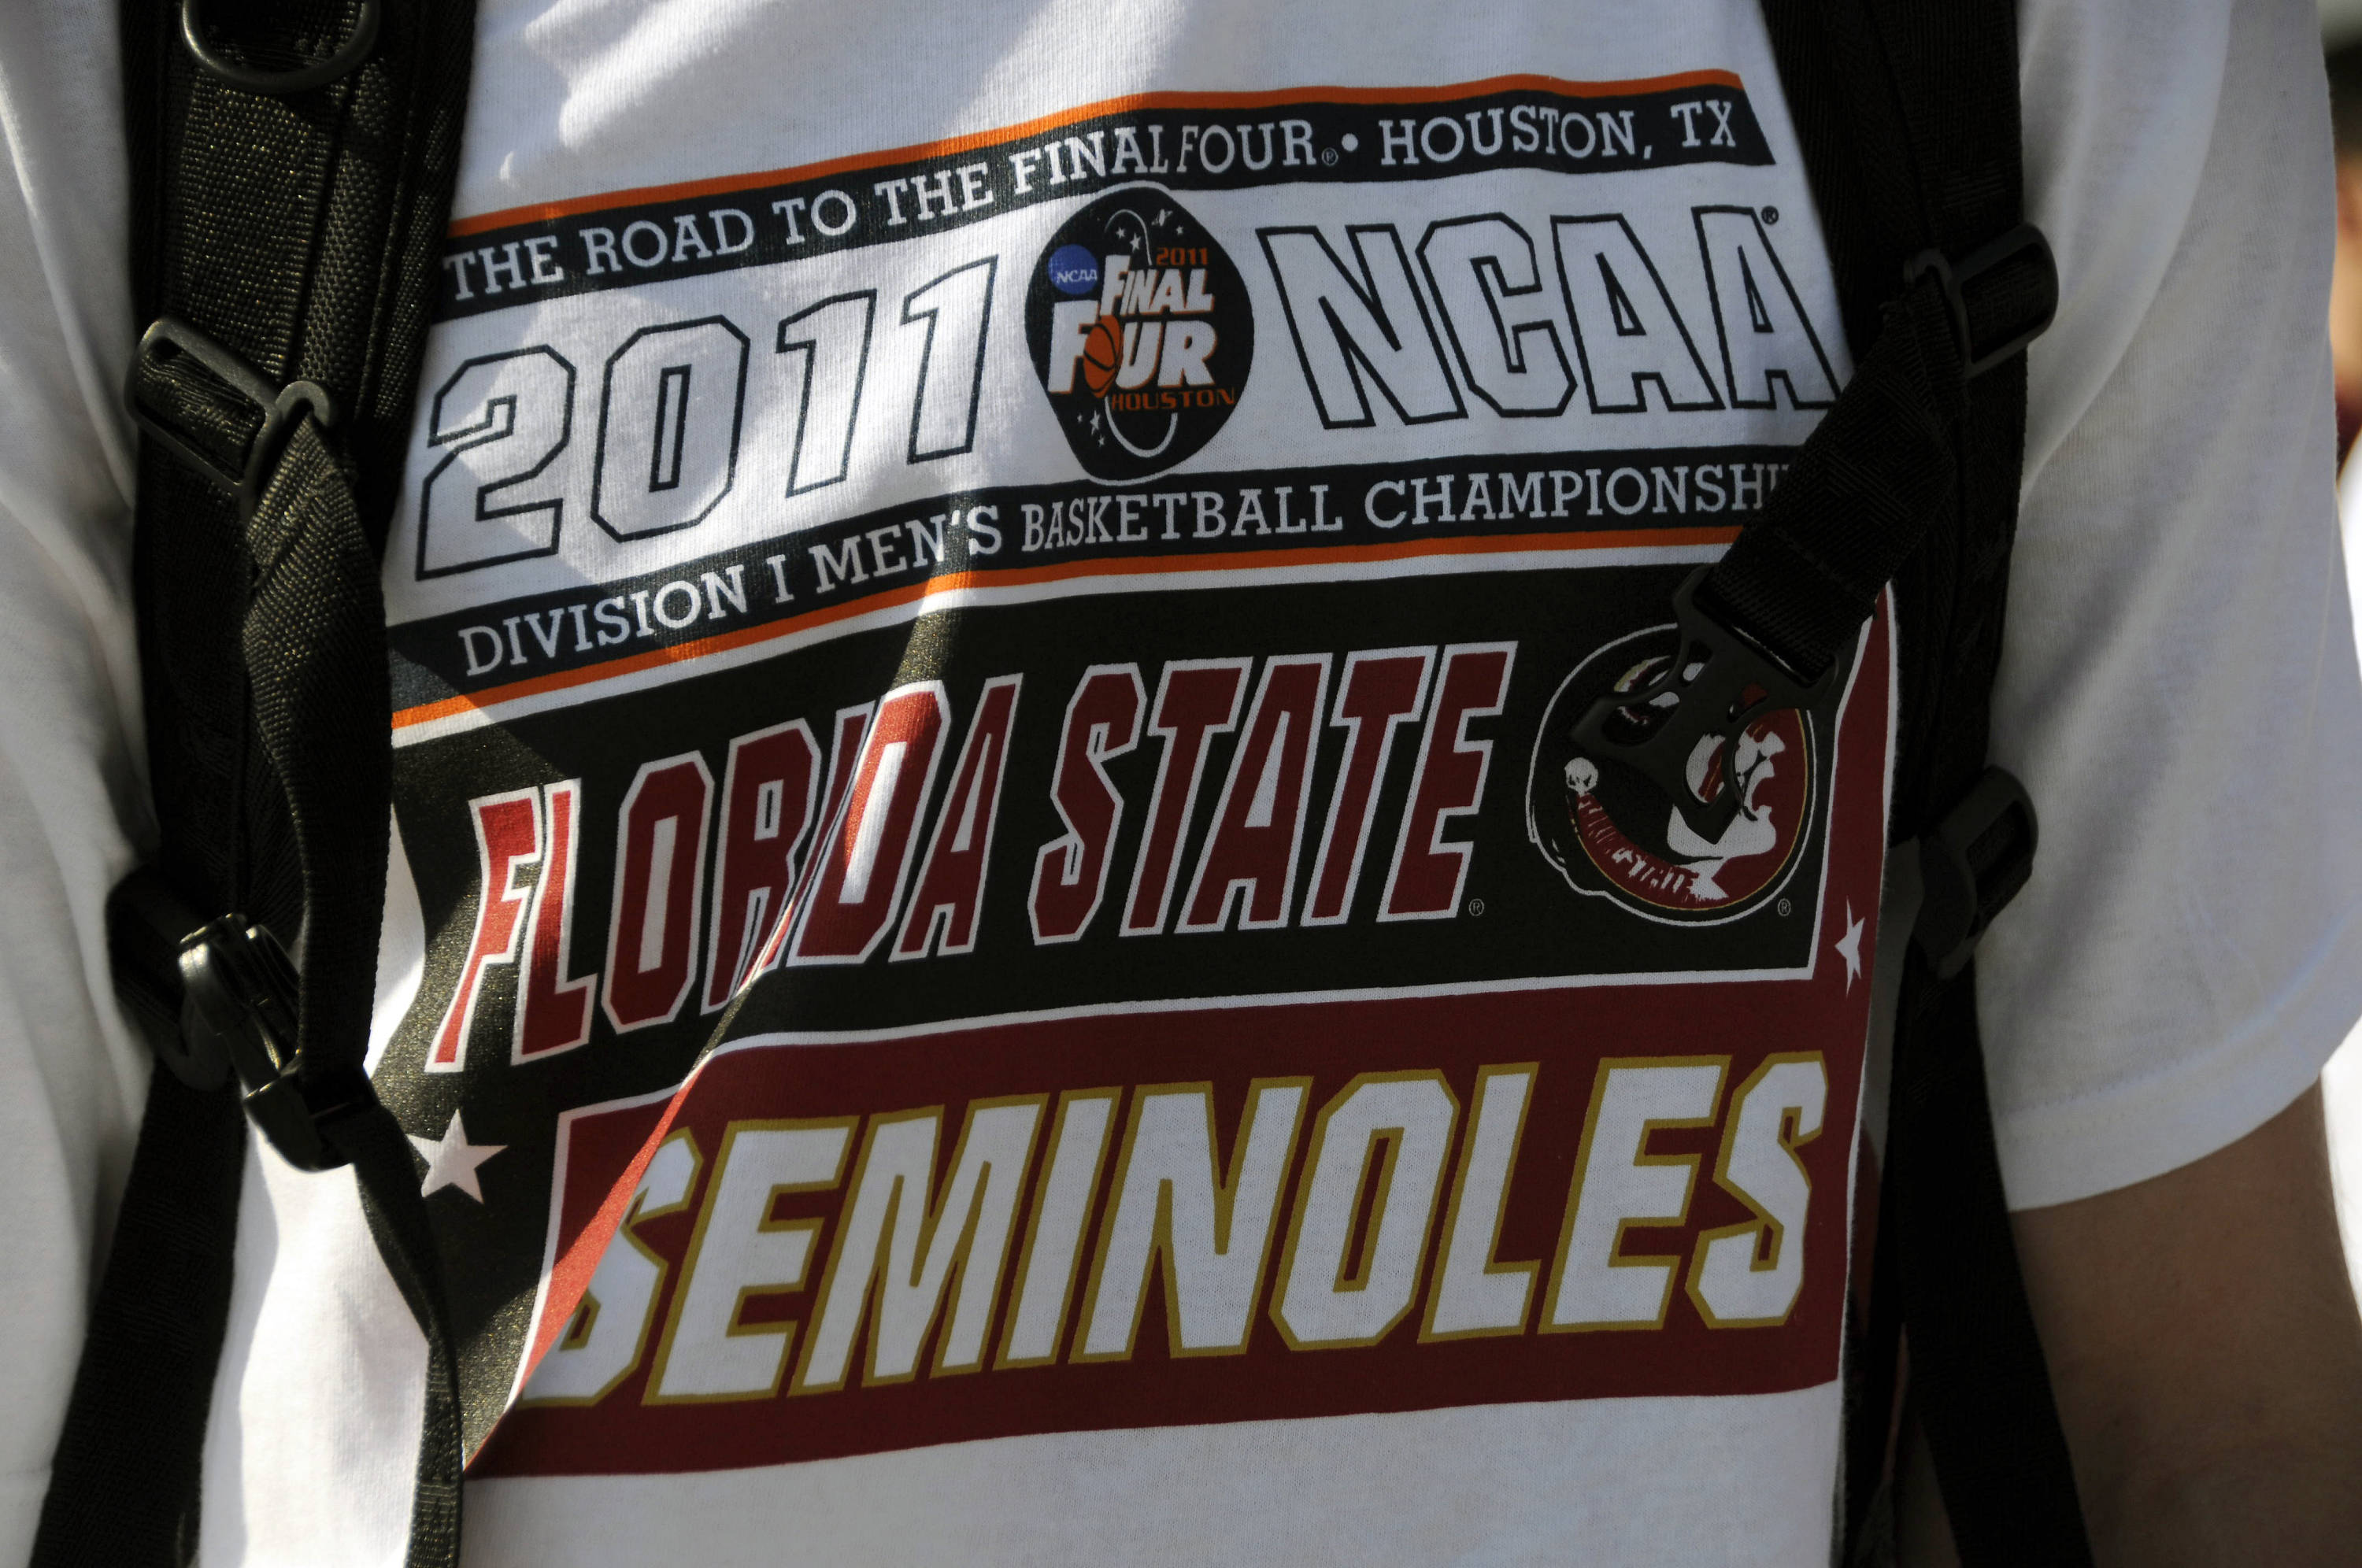 The Road to the Final Four includes the Seminoles